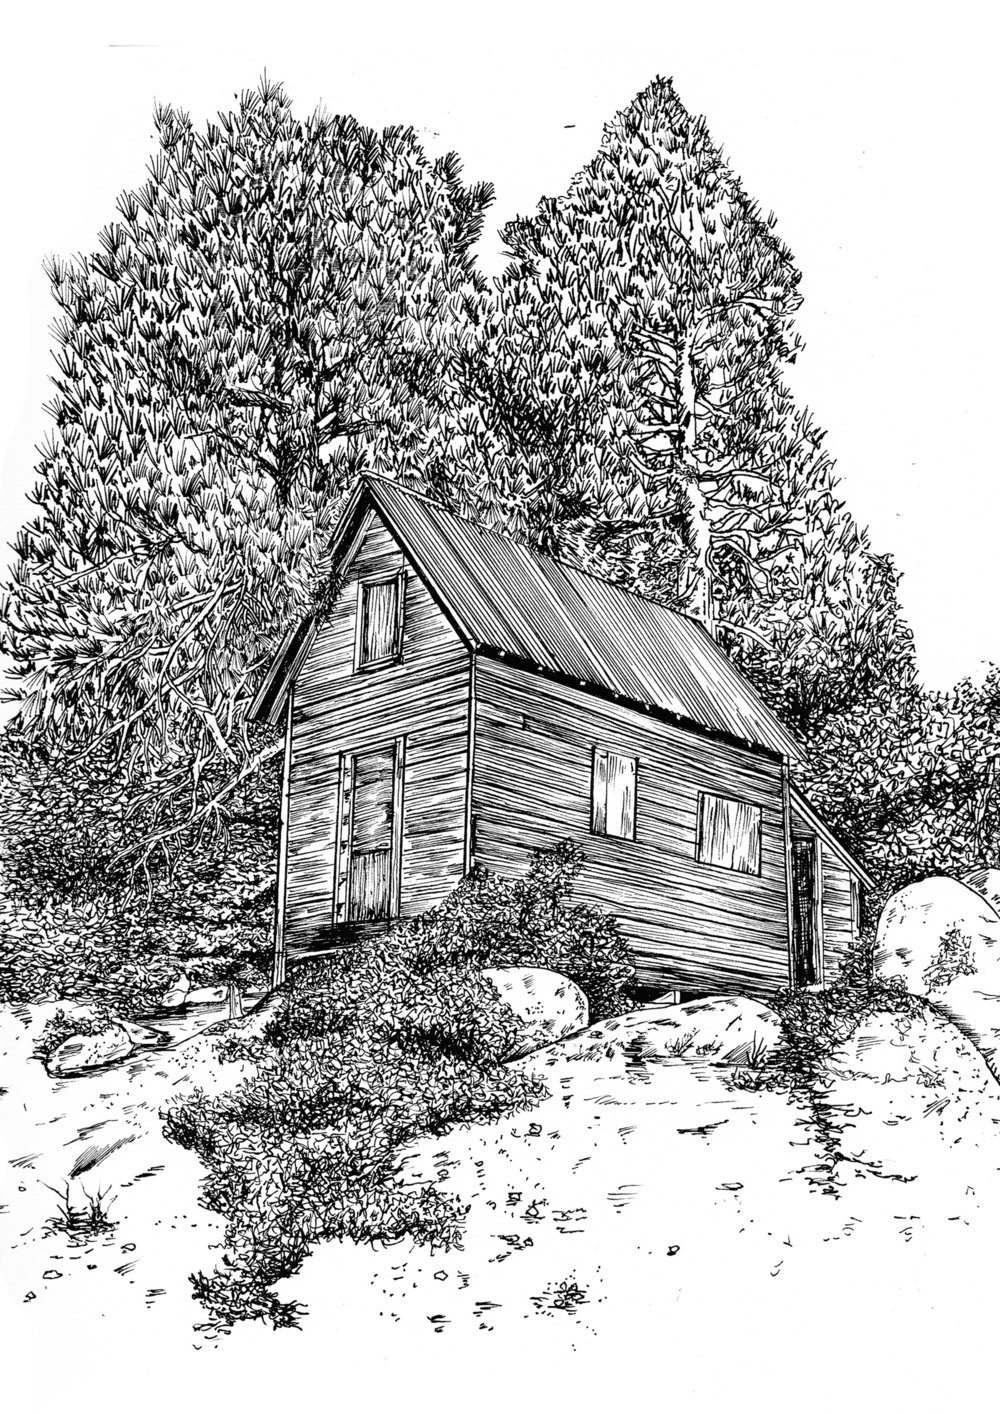 Famous fishing cabin in Green Valley Lake, California. Painted and drawn by a number of artists over the years, famous watercolor artist Robert E. Wood being one of them. Here's my rendition.